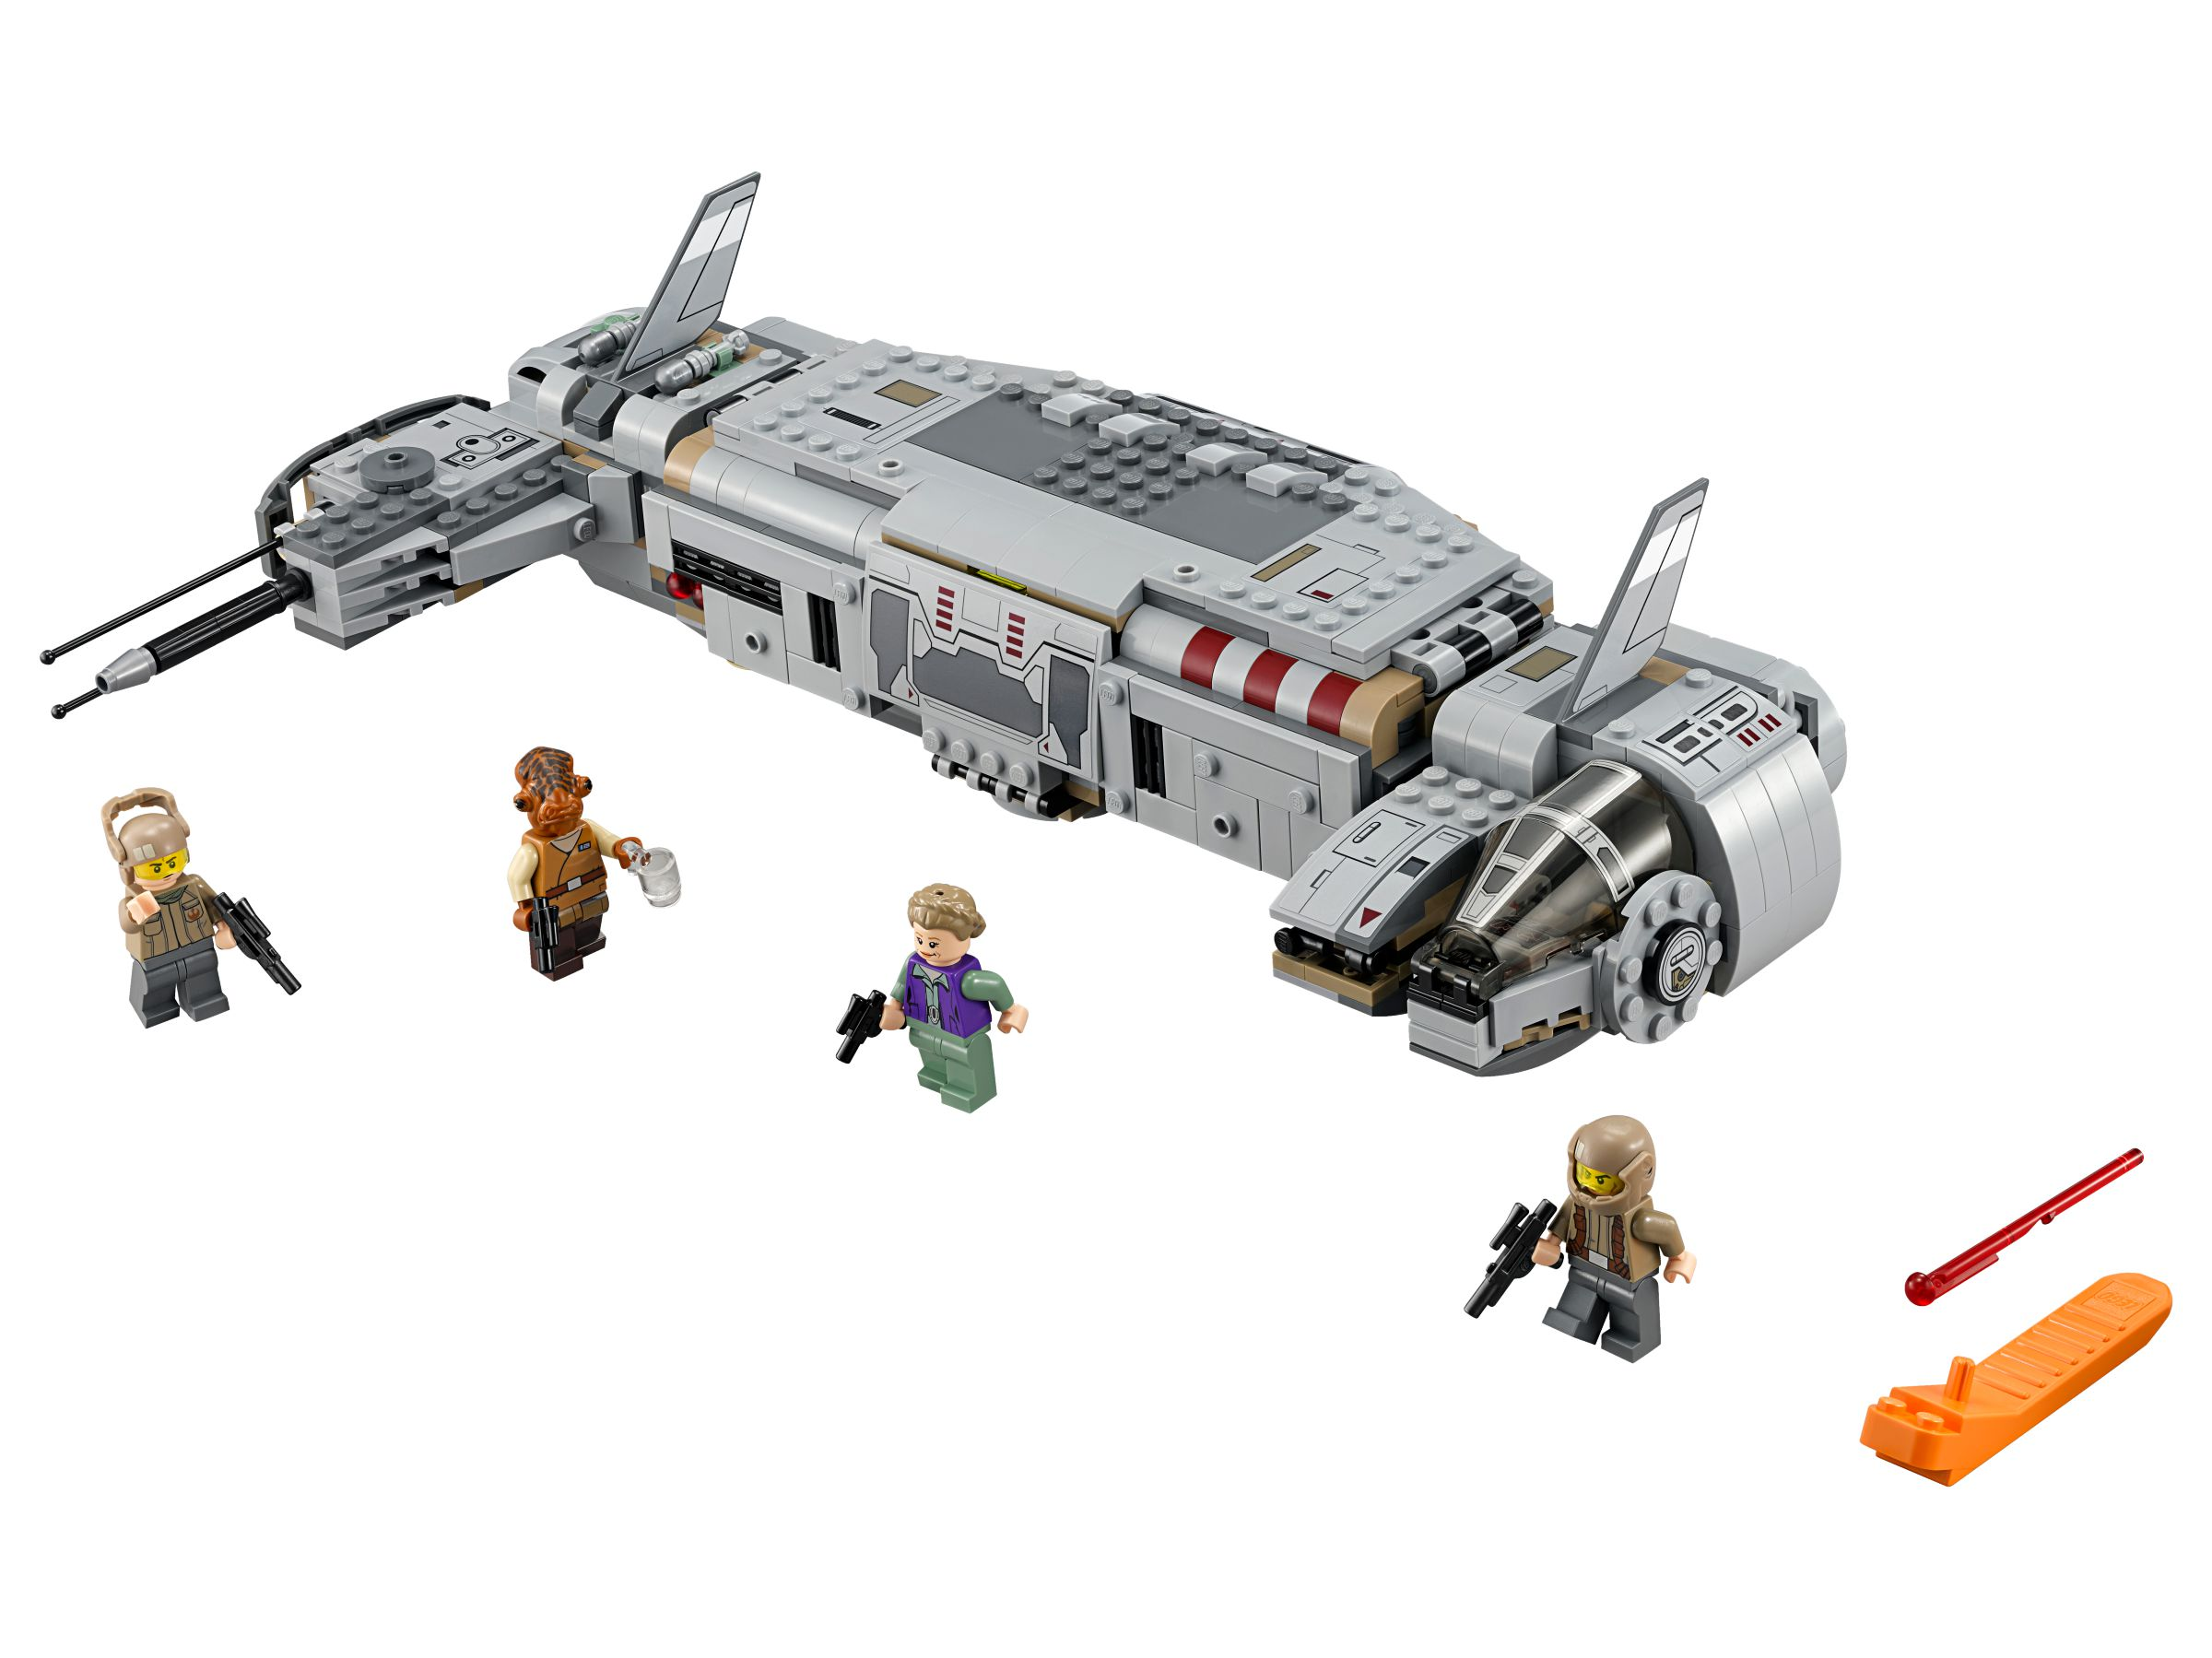 LEGO Star Wars 75140 Resistance Troop Transporter LEGO_75140.jpg